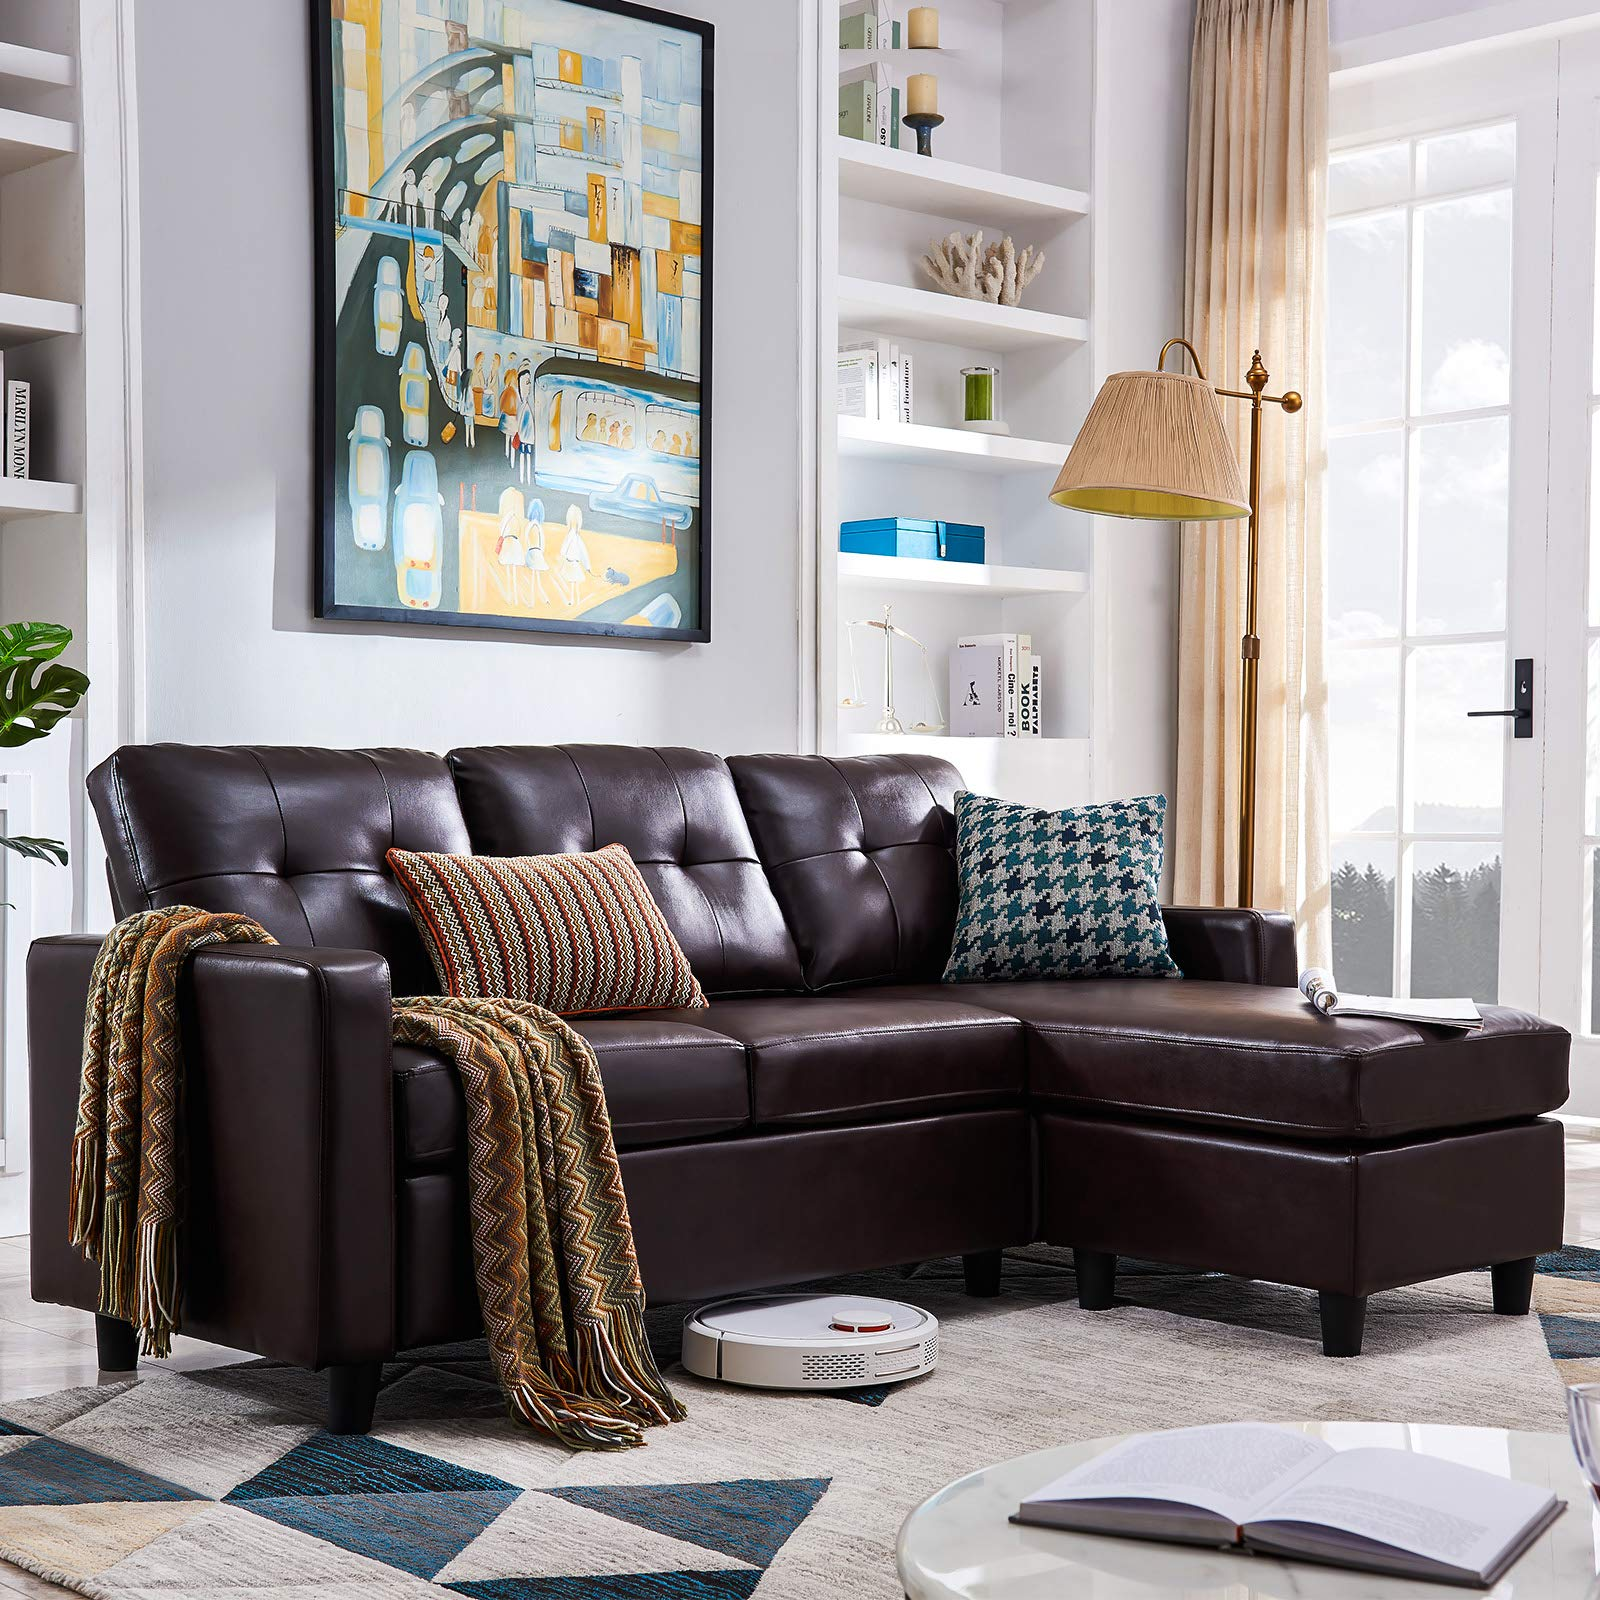 HONBAY Convertible Sectional Sofa Couch Leather L-Shape Couch with Modern Faux Leather Sectional for Small Space Apartment Brown by HONBAY